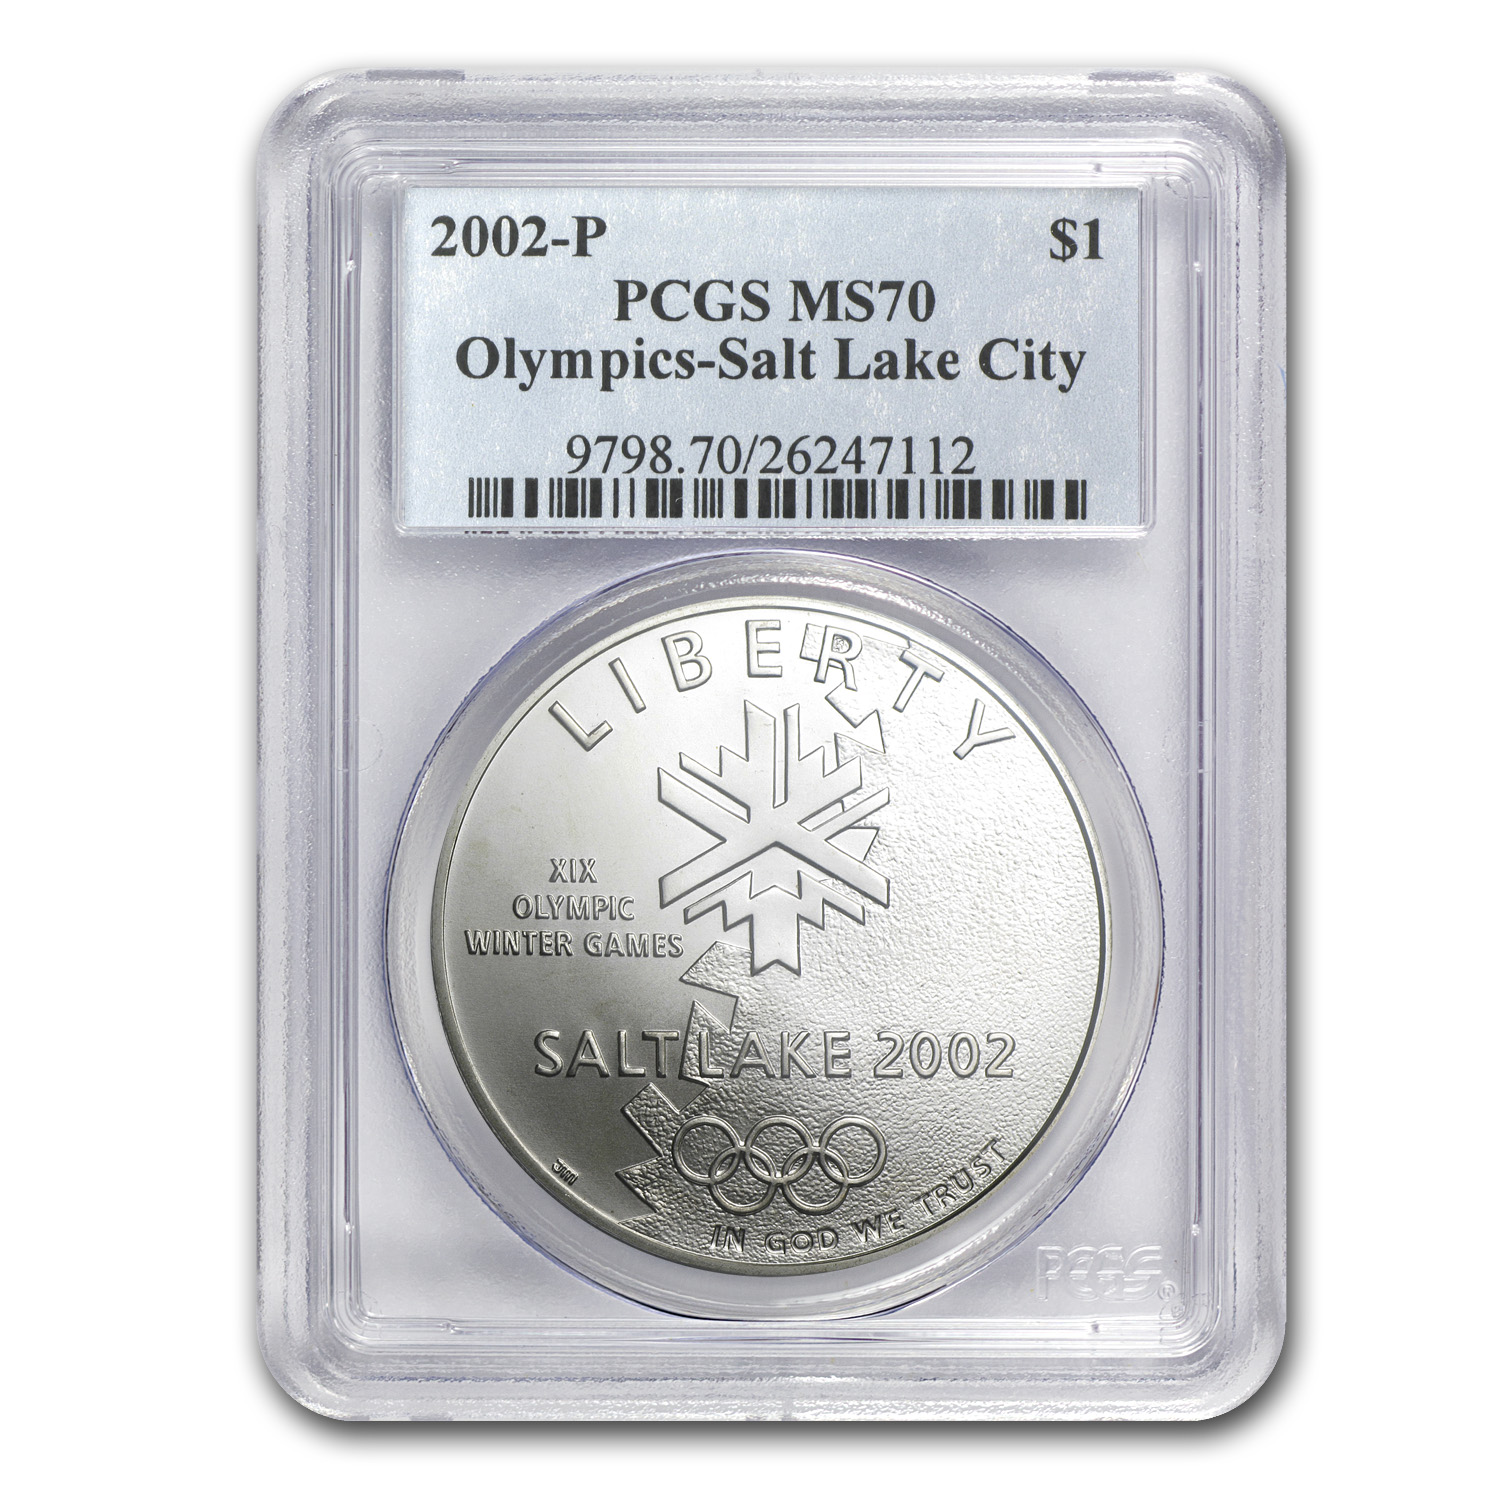 2002-P Olympic Winter Games $1 Silver Commemorative MS-70 PCGS